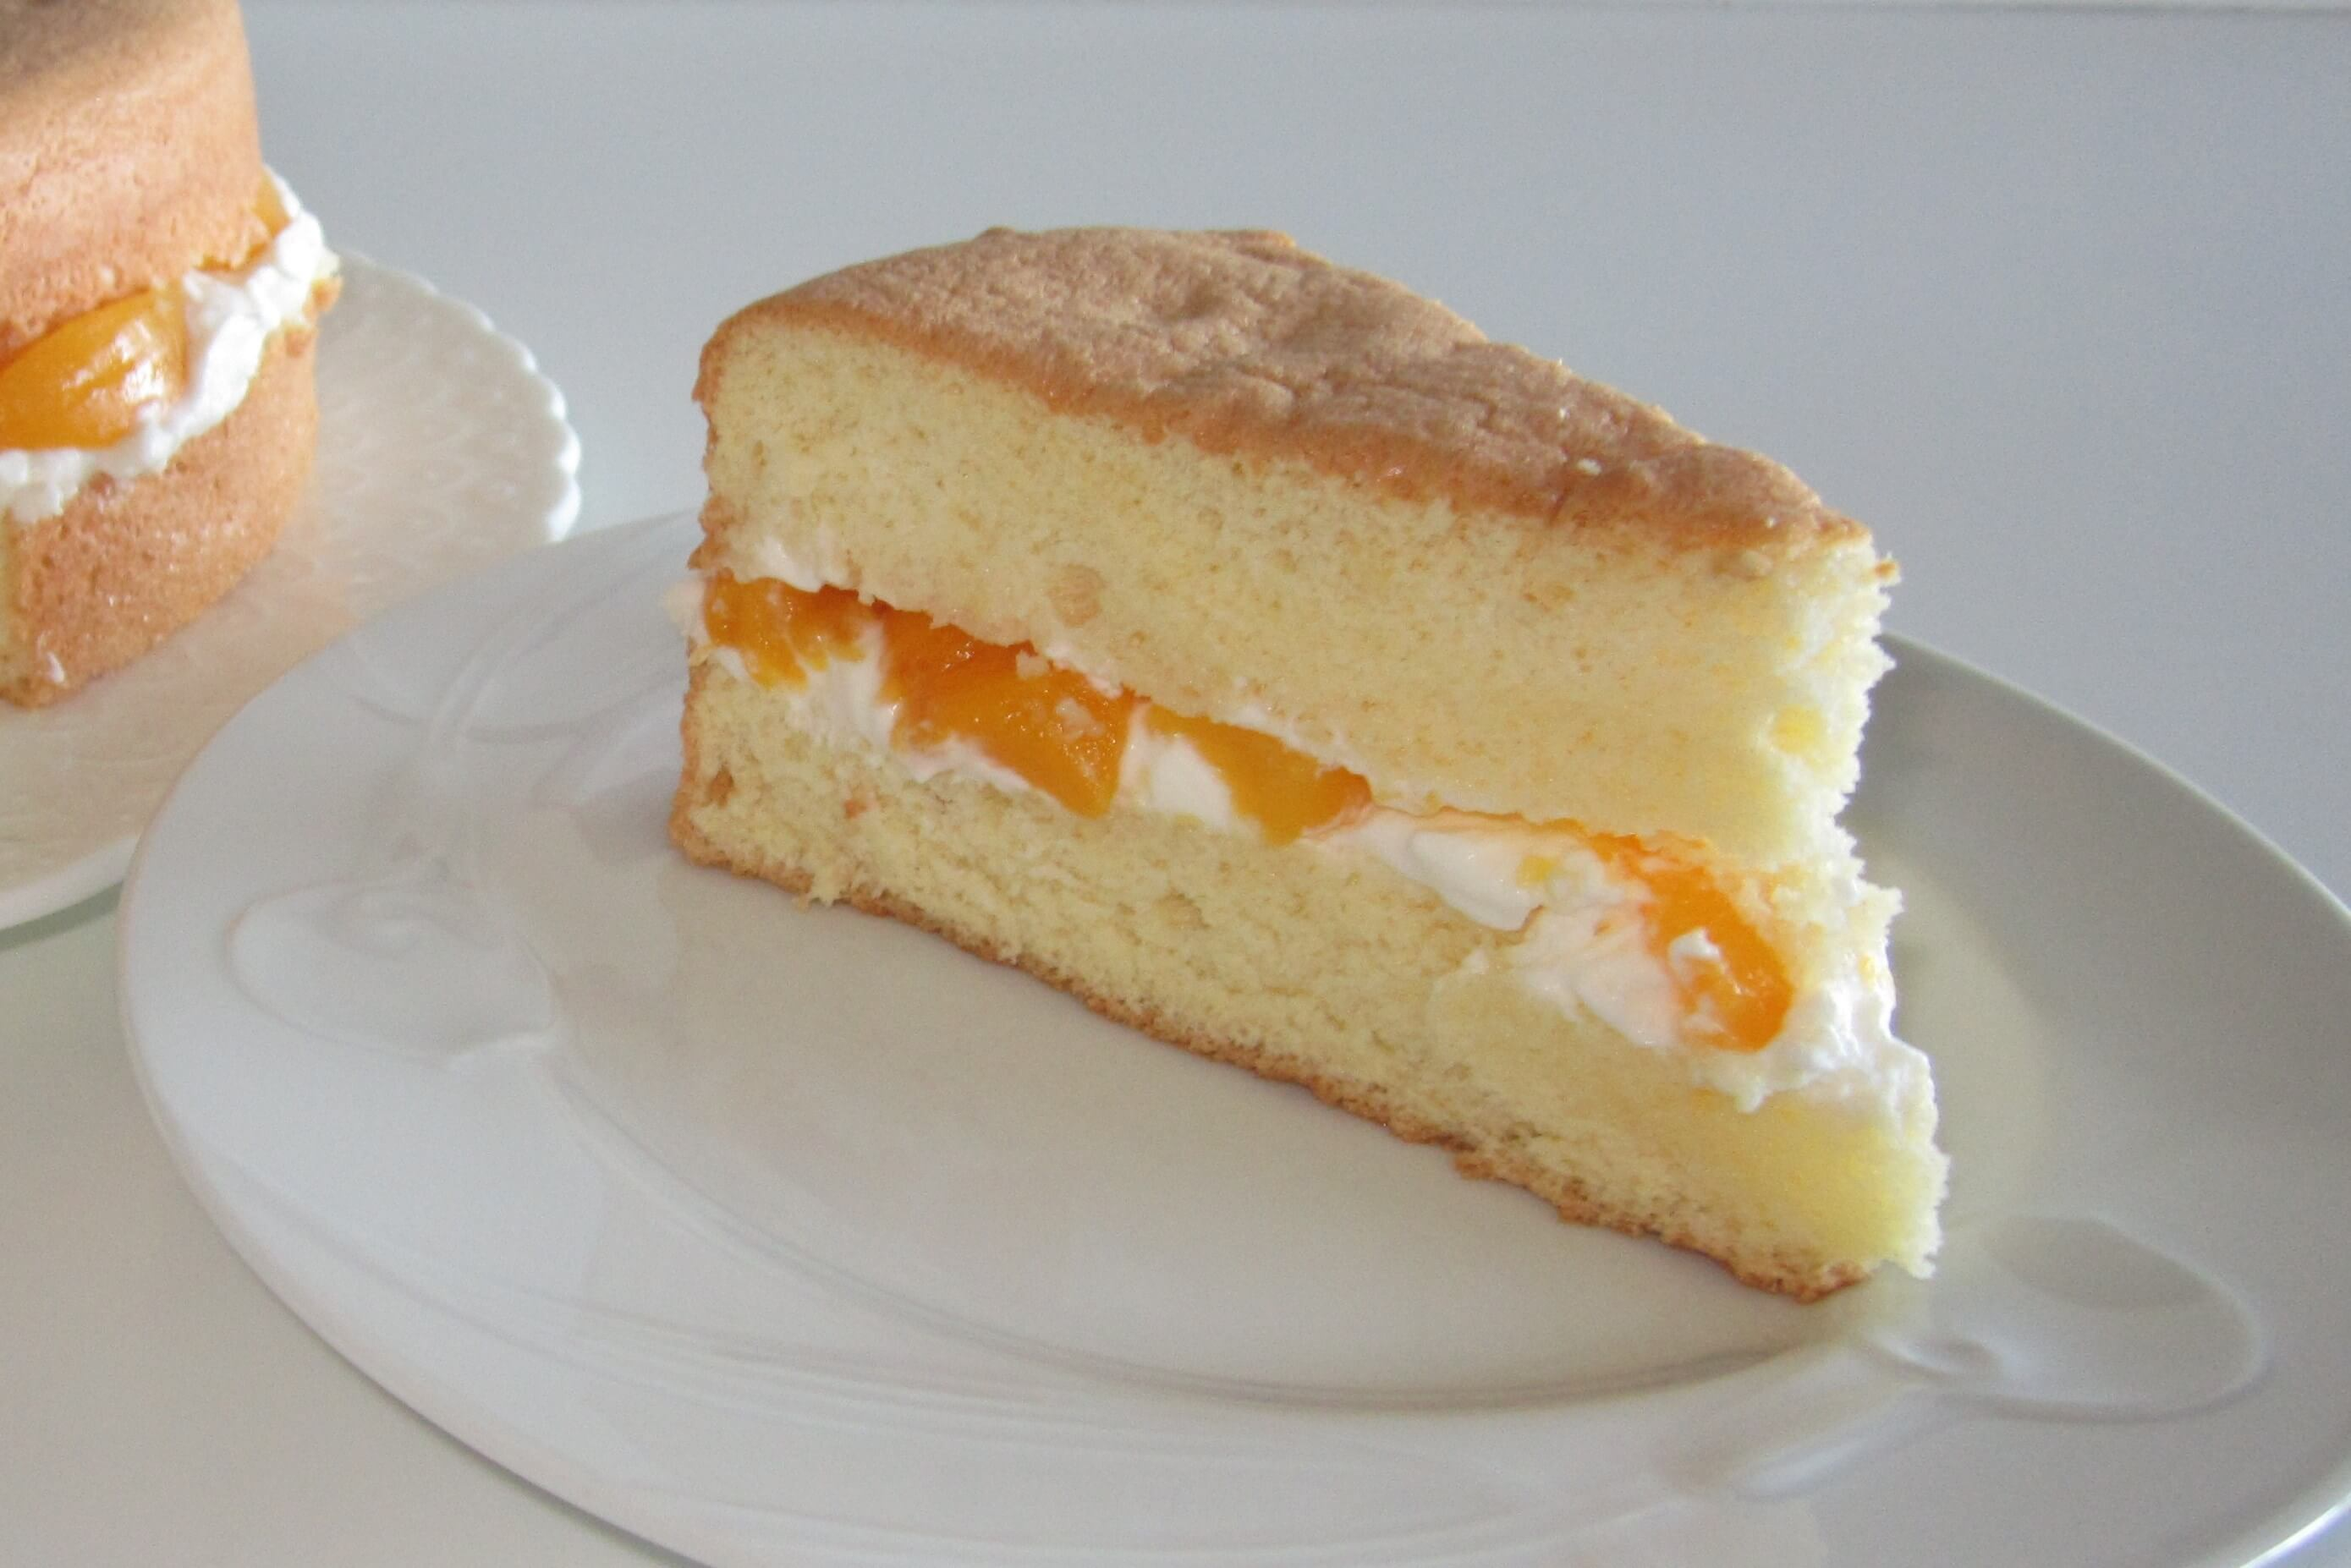 Cake Cream With Egg White